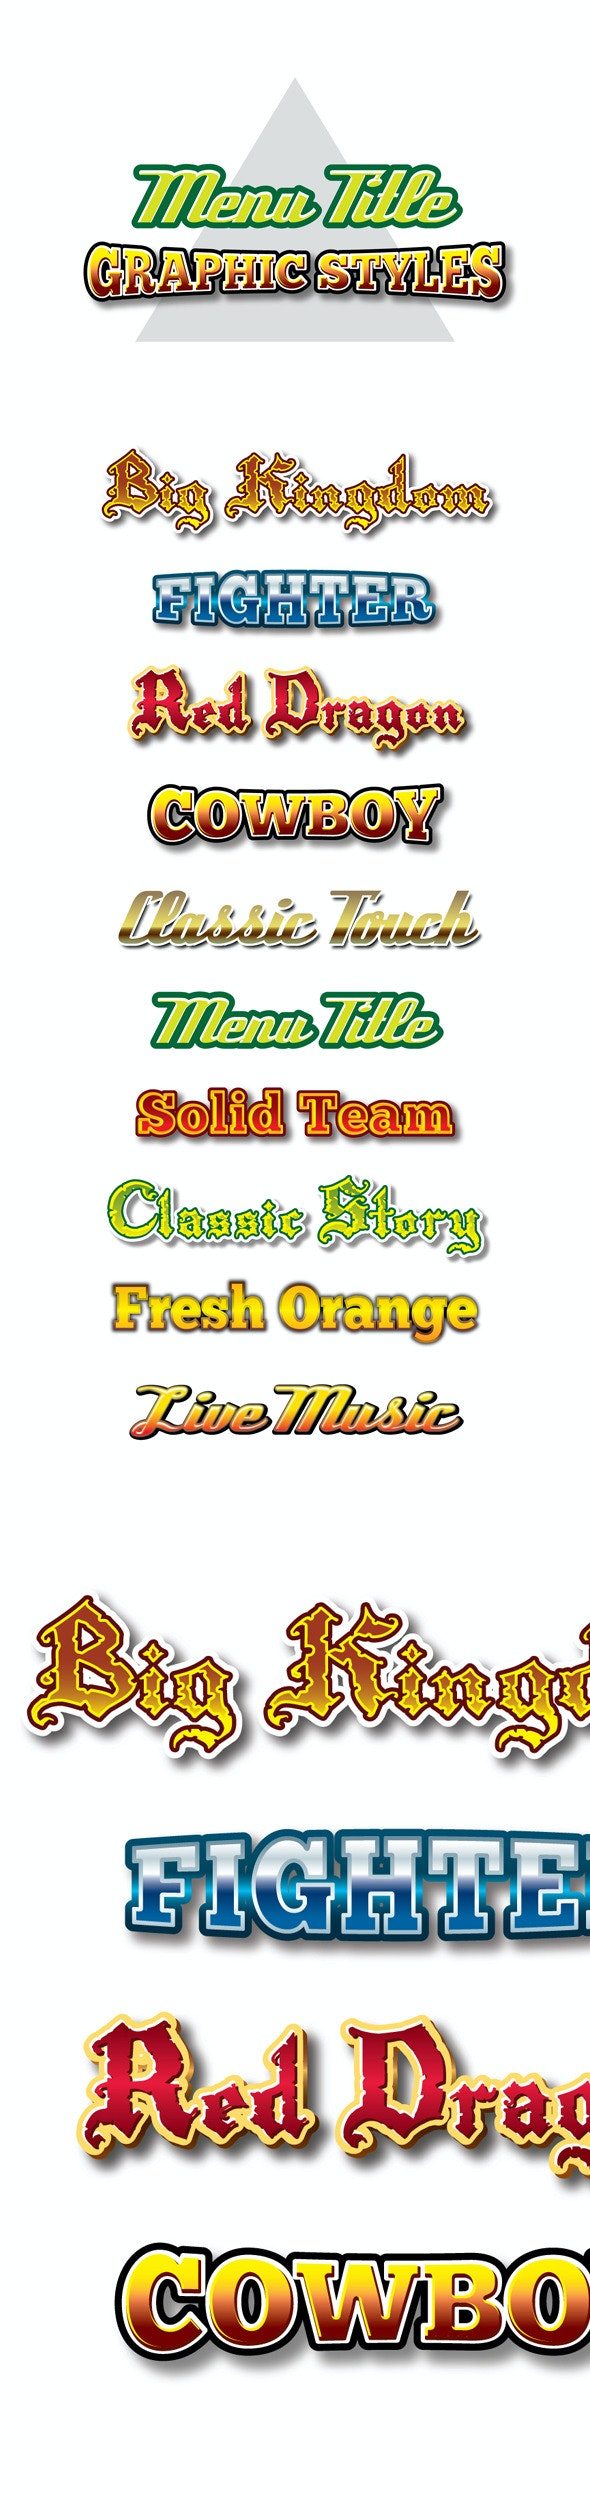 Menu Title Graphic Styles for Ai - Styles Illustrator